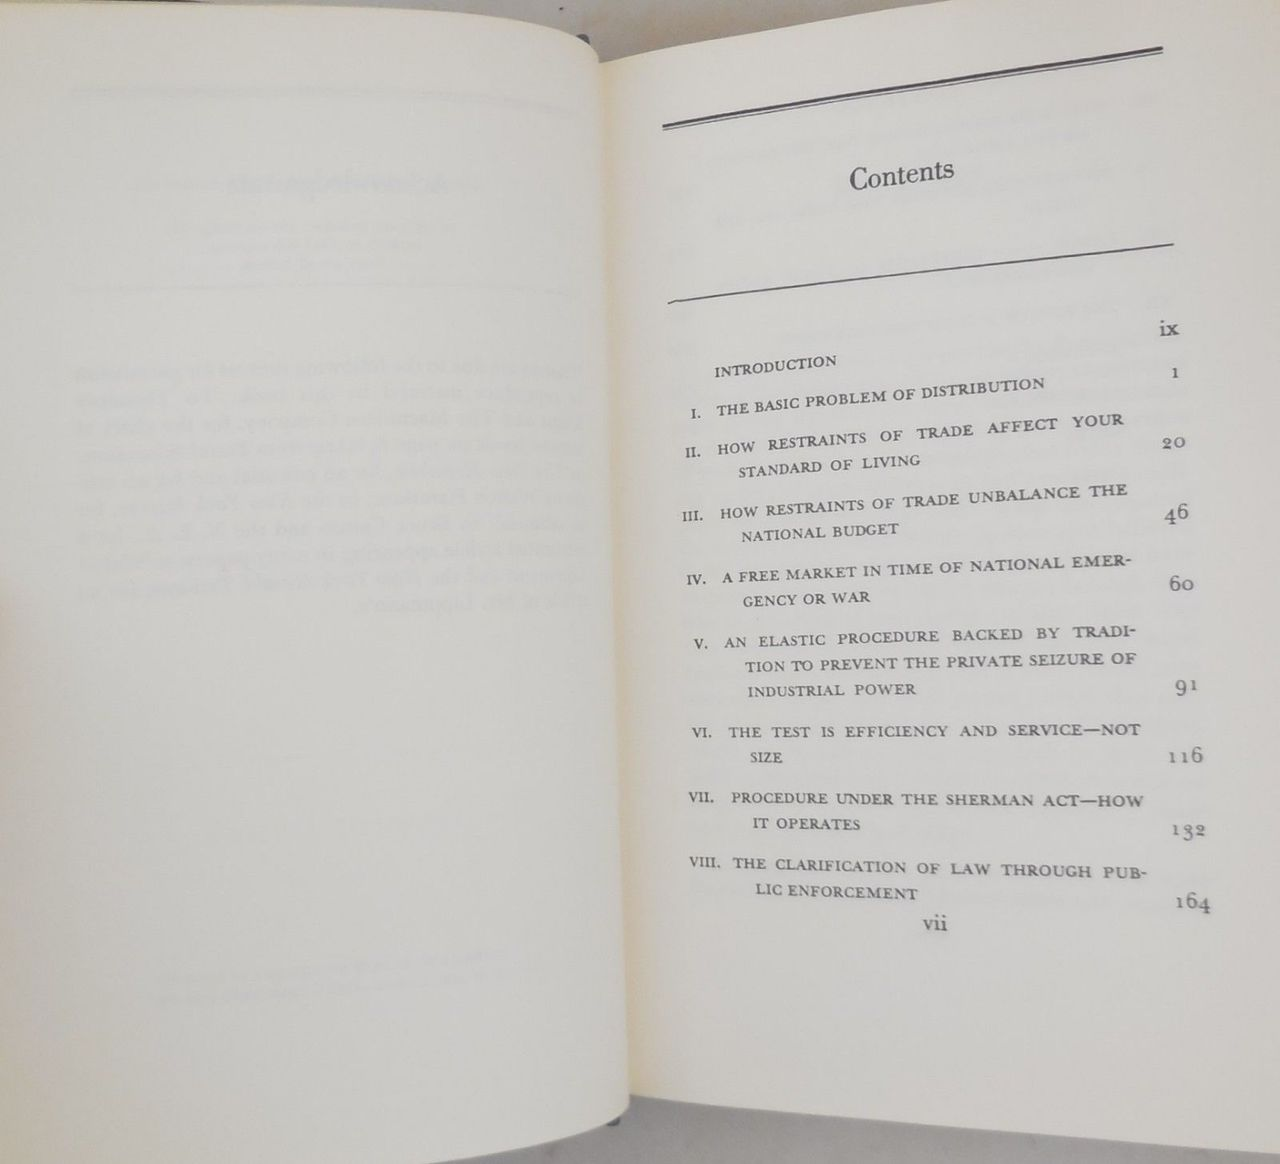 THE BOTTLENECKS OF BUSINESS, by Thurman W. Arnold - 1973